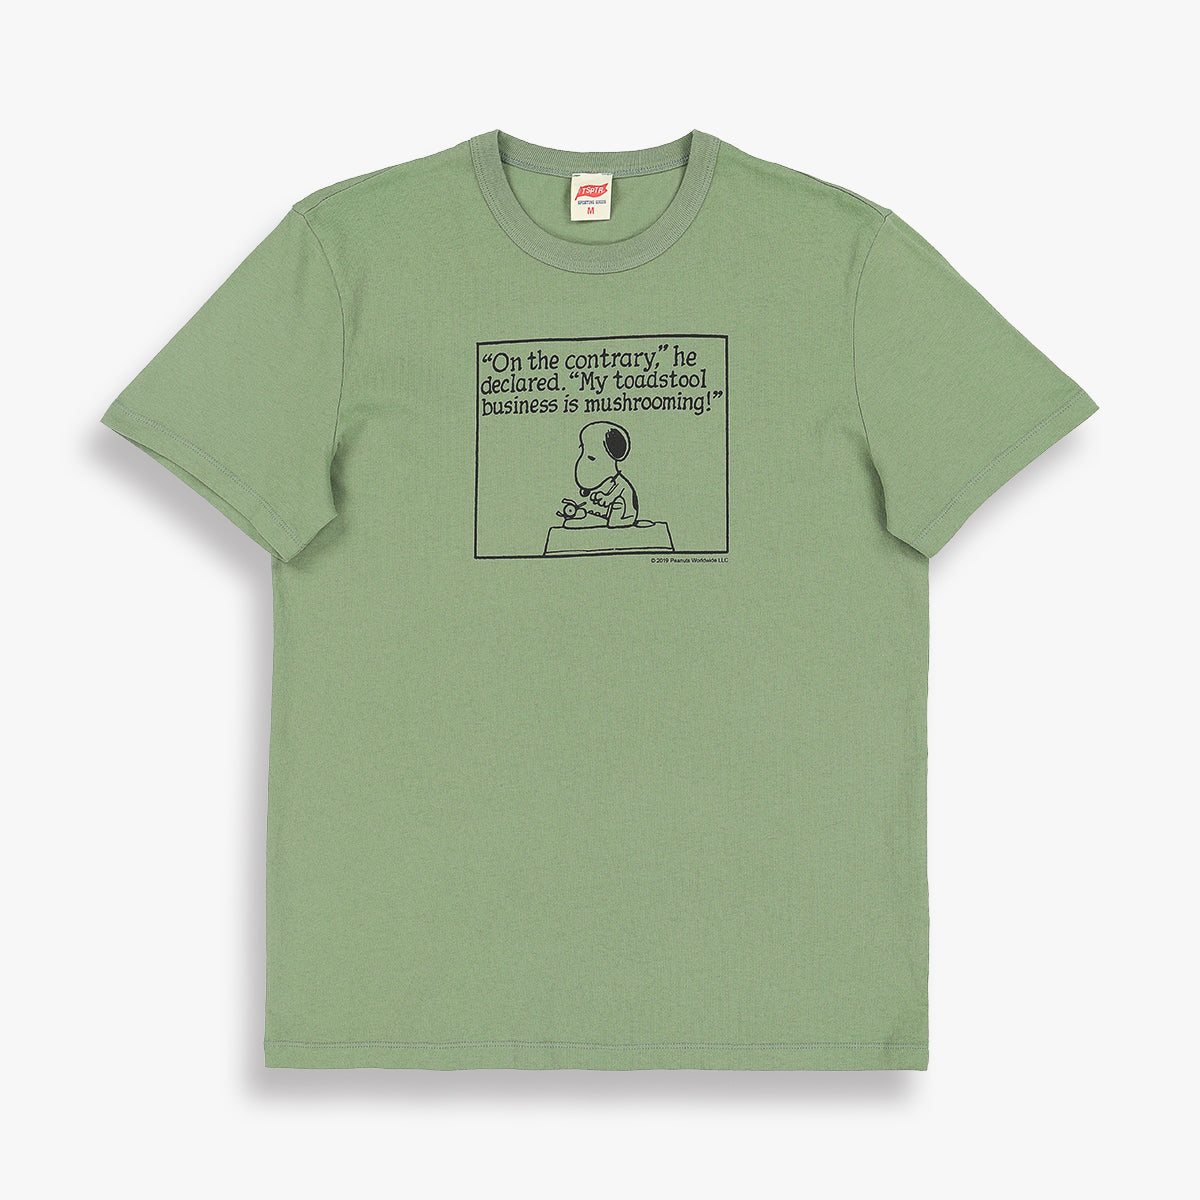 SNOOPY TOADSTOOL BUSINESS TEE